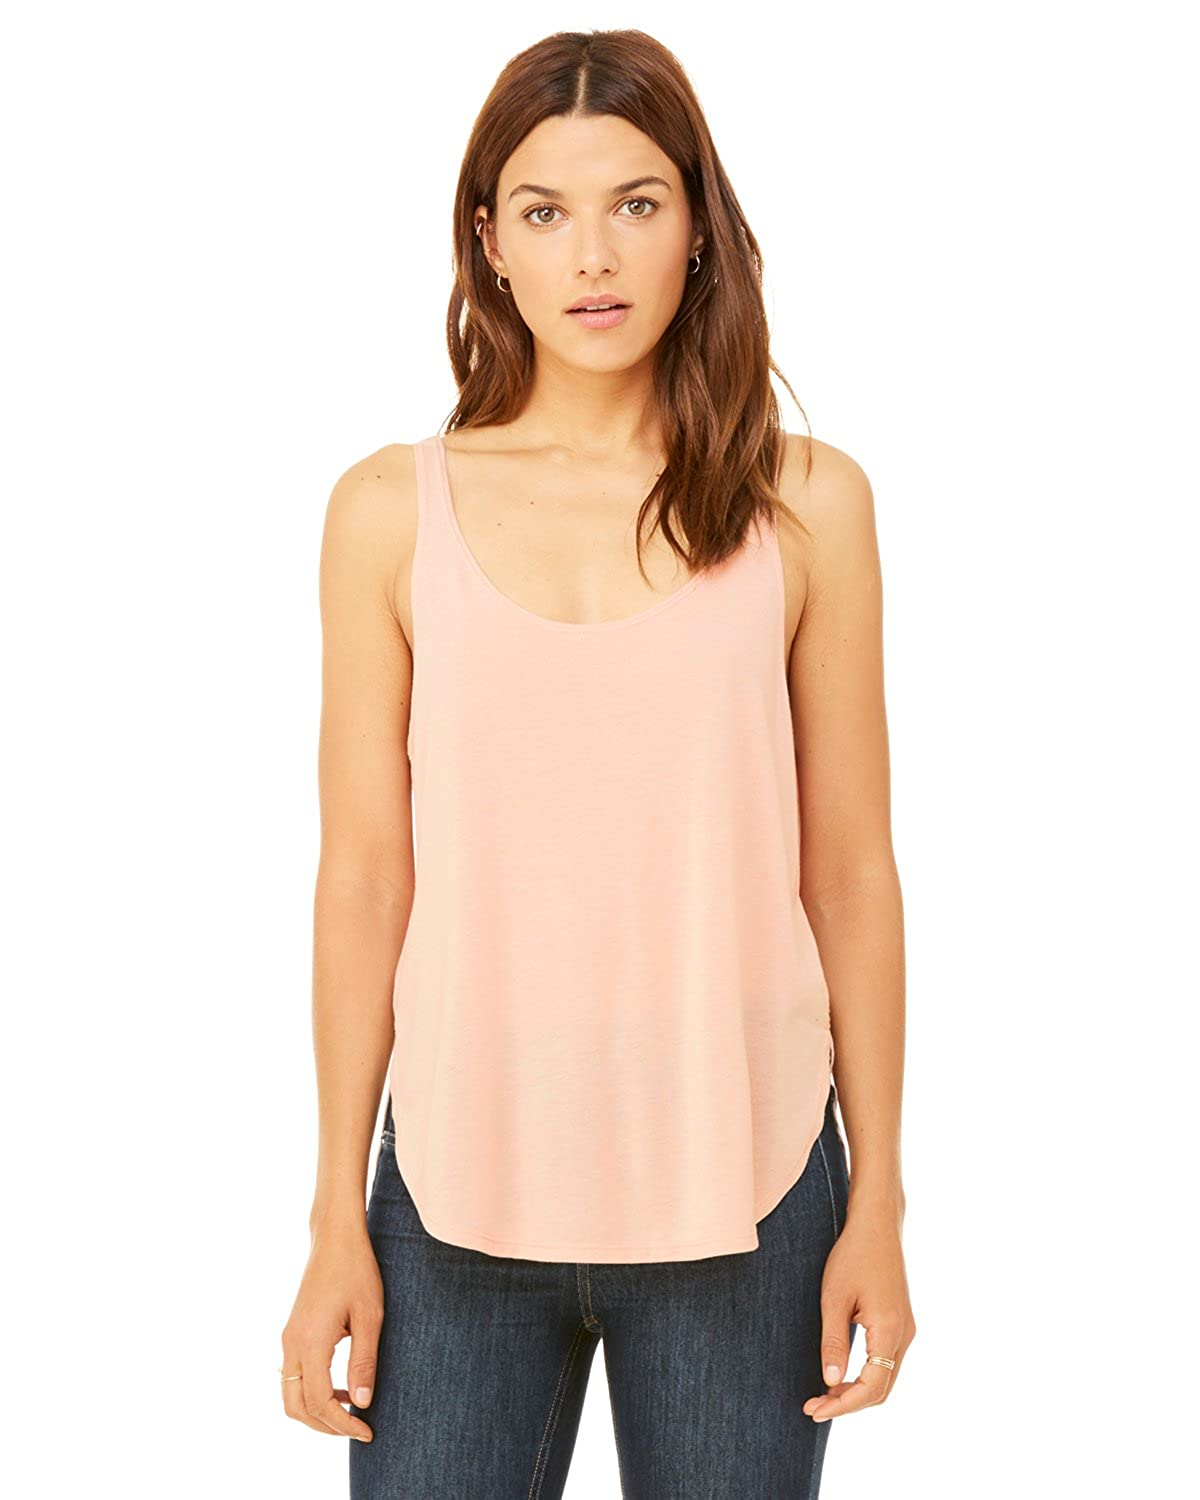 Bella+Canvas - Leichtes Damen Tanktop 'Flowy' Bella + Canvas B8802